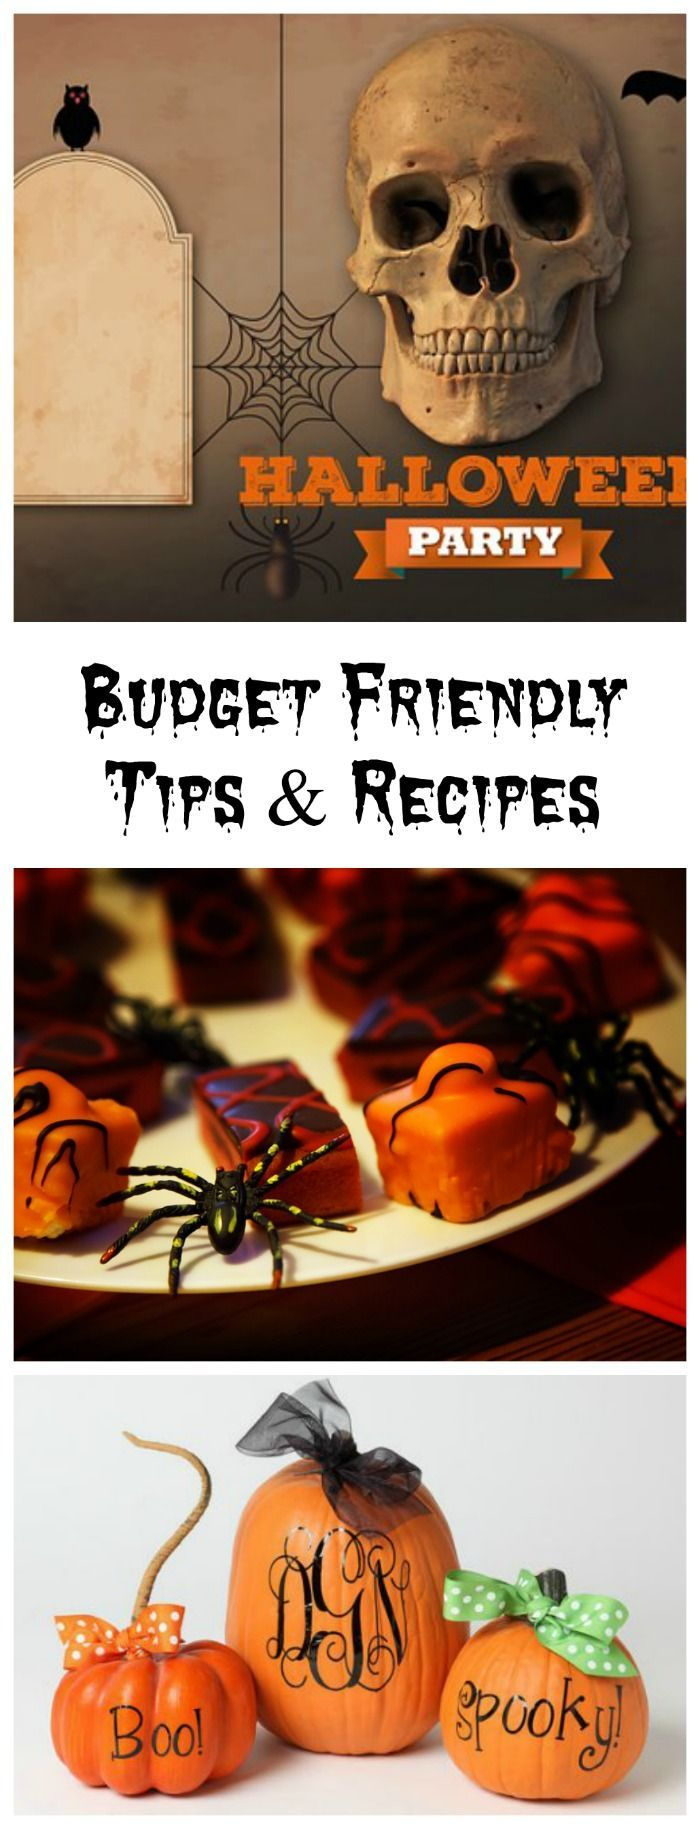 These budget friendly Halloween party tips and recipes will help to make your party one that won't break the bank. #halloweenparty #budgetpartytips